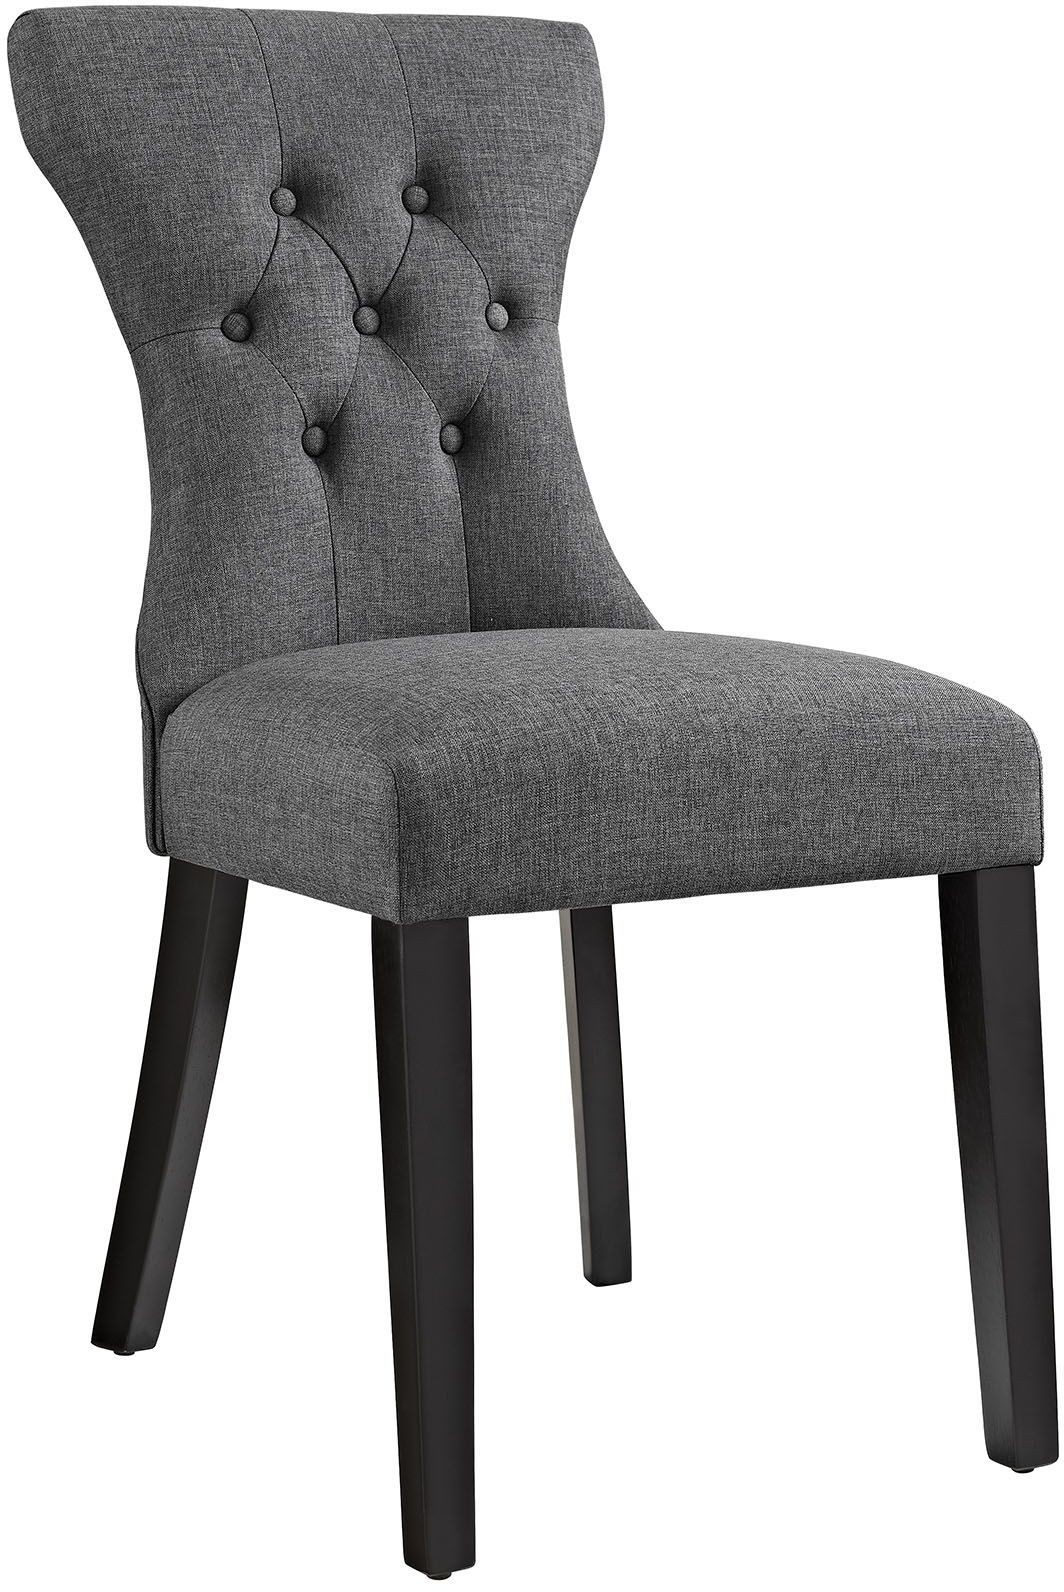 Silhouette Gray Dining Side Chair EEI 1380 GRY Renegade